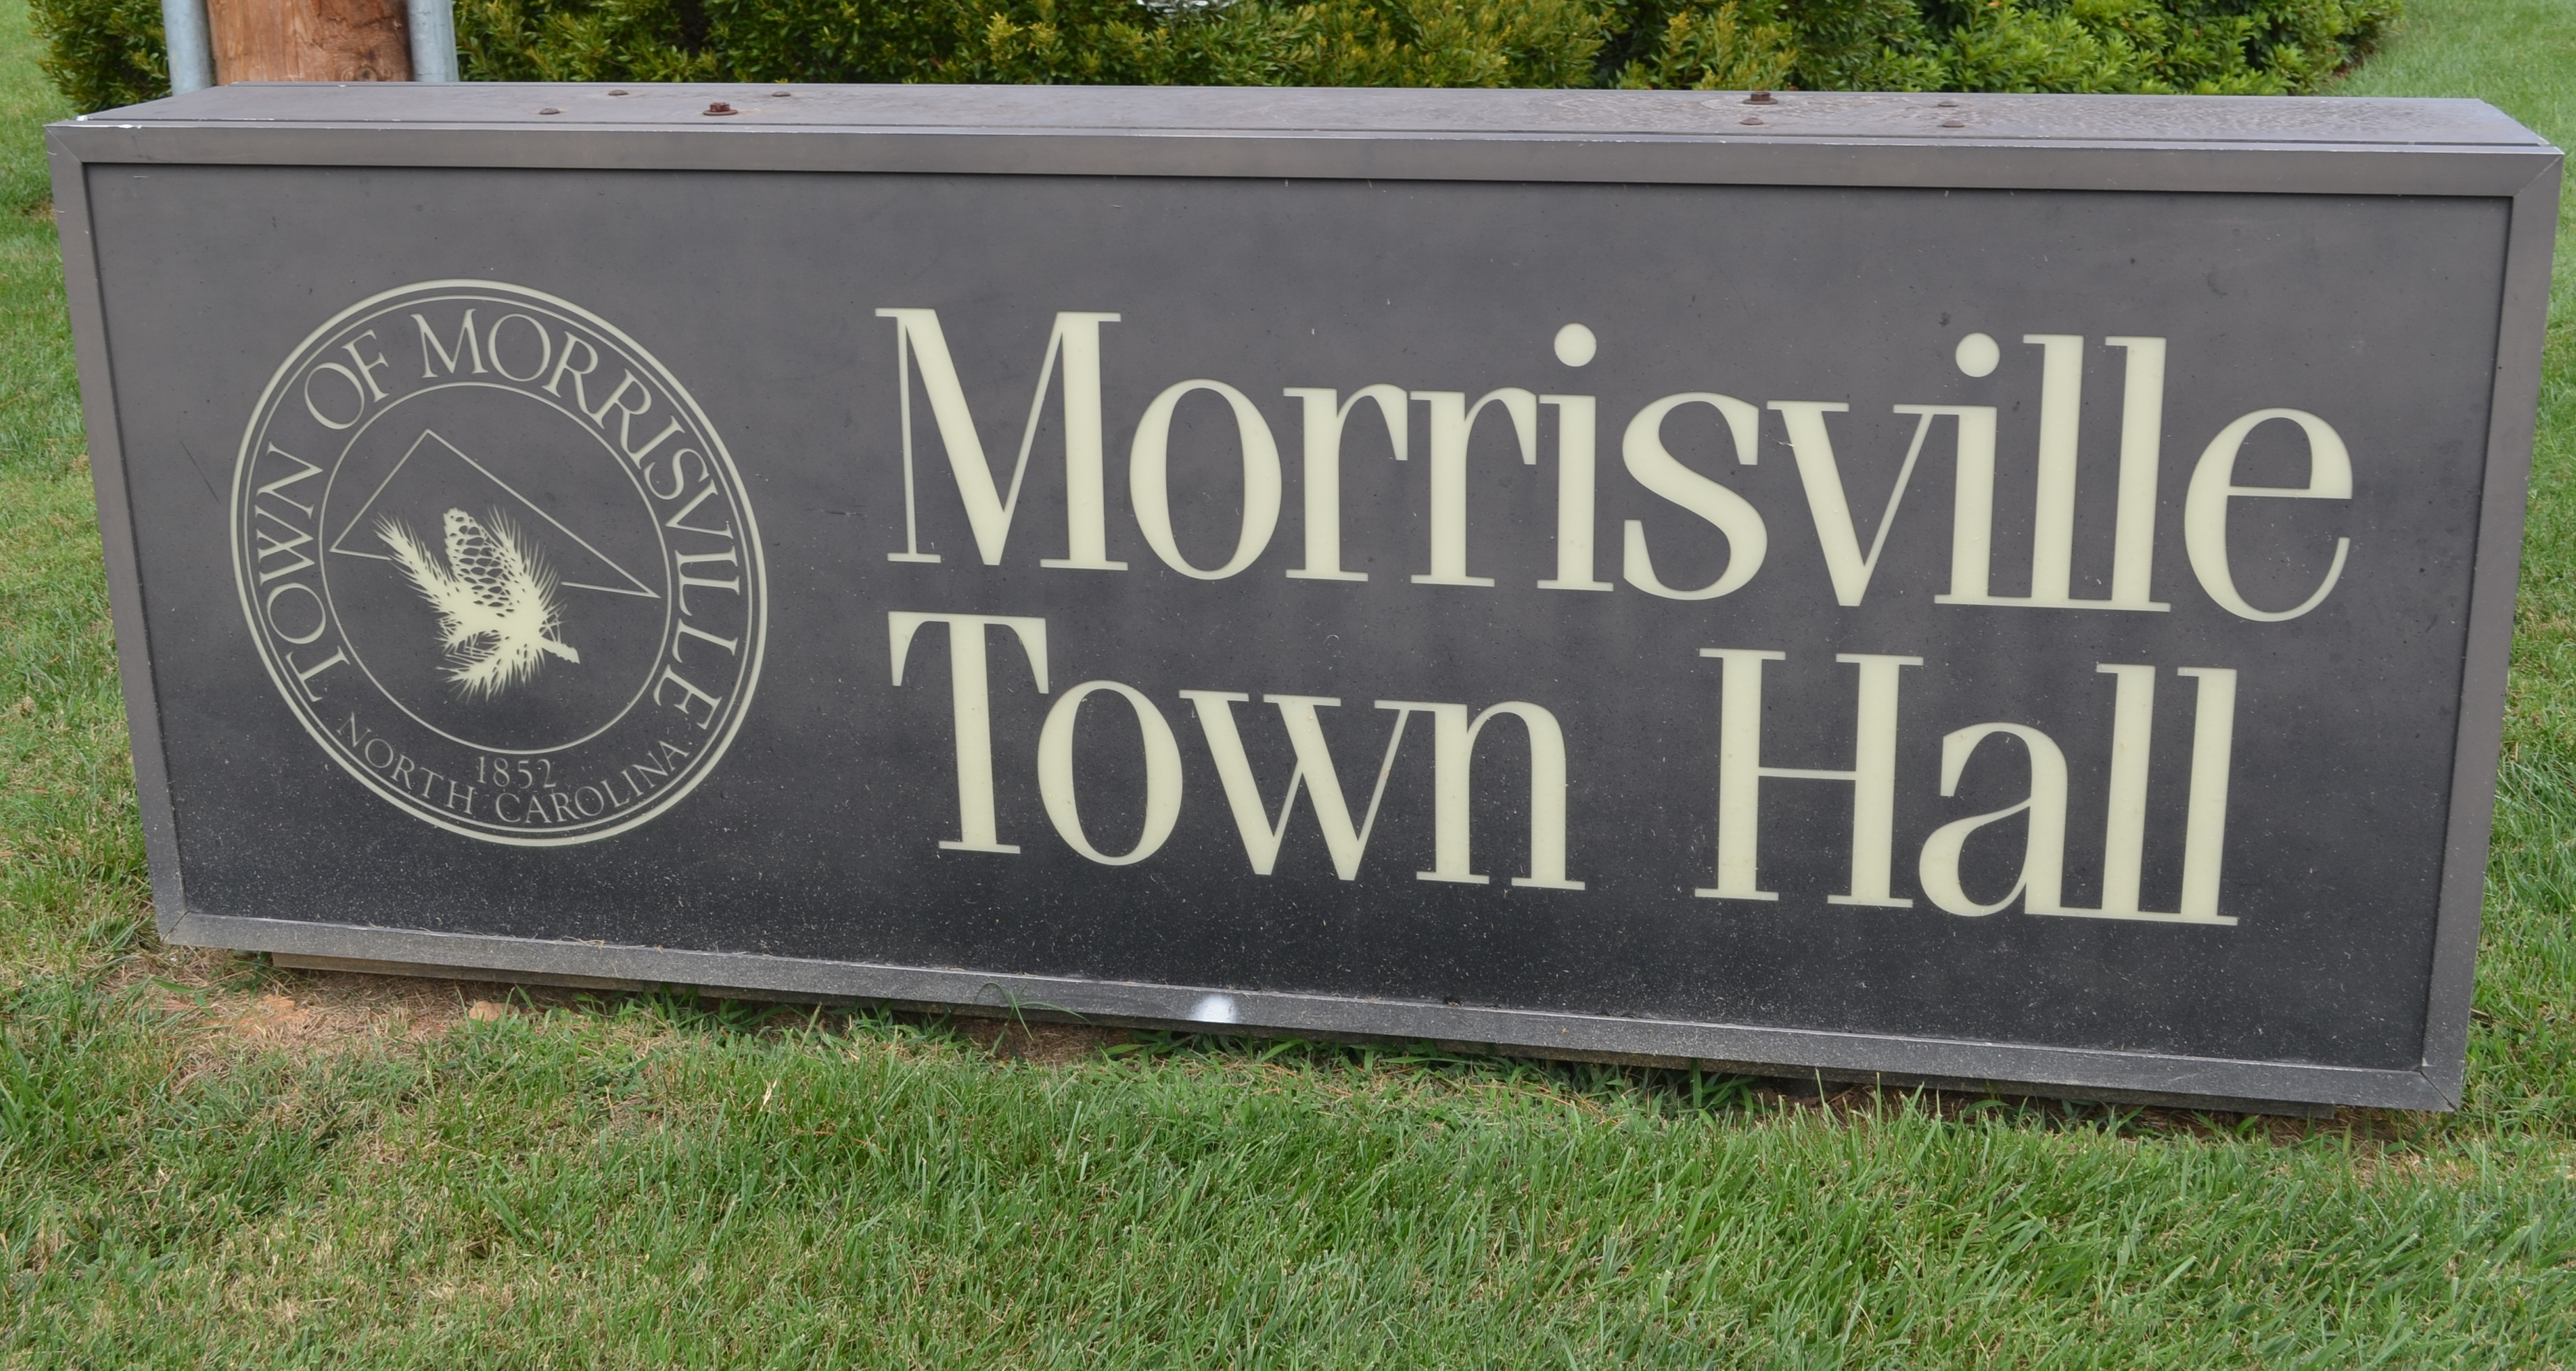 TownHall sign